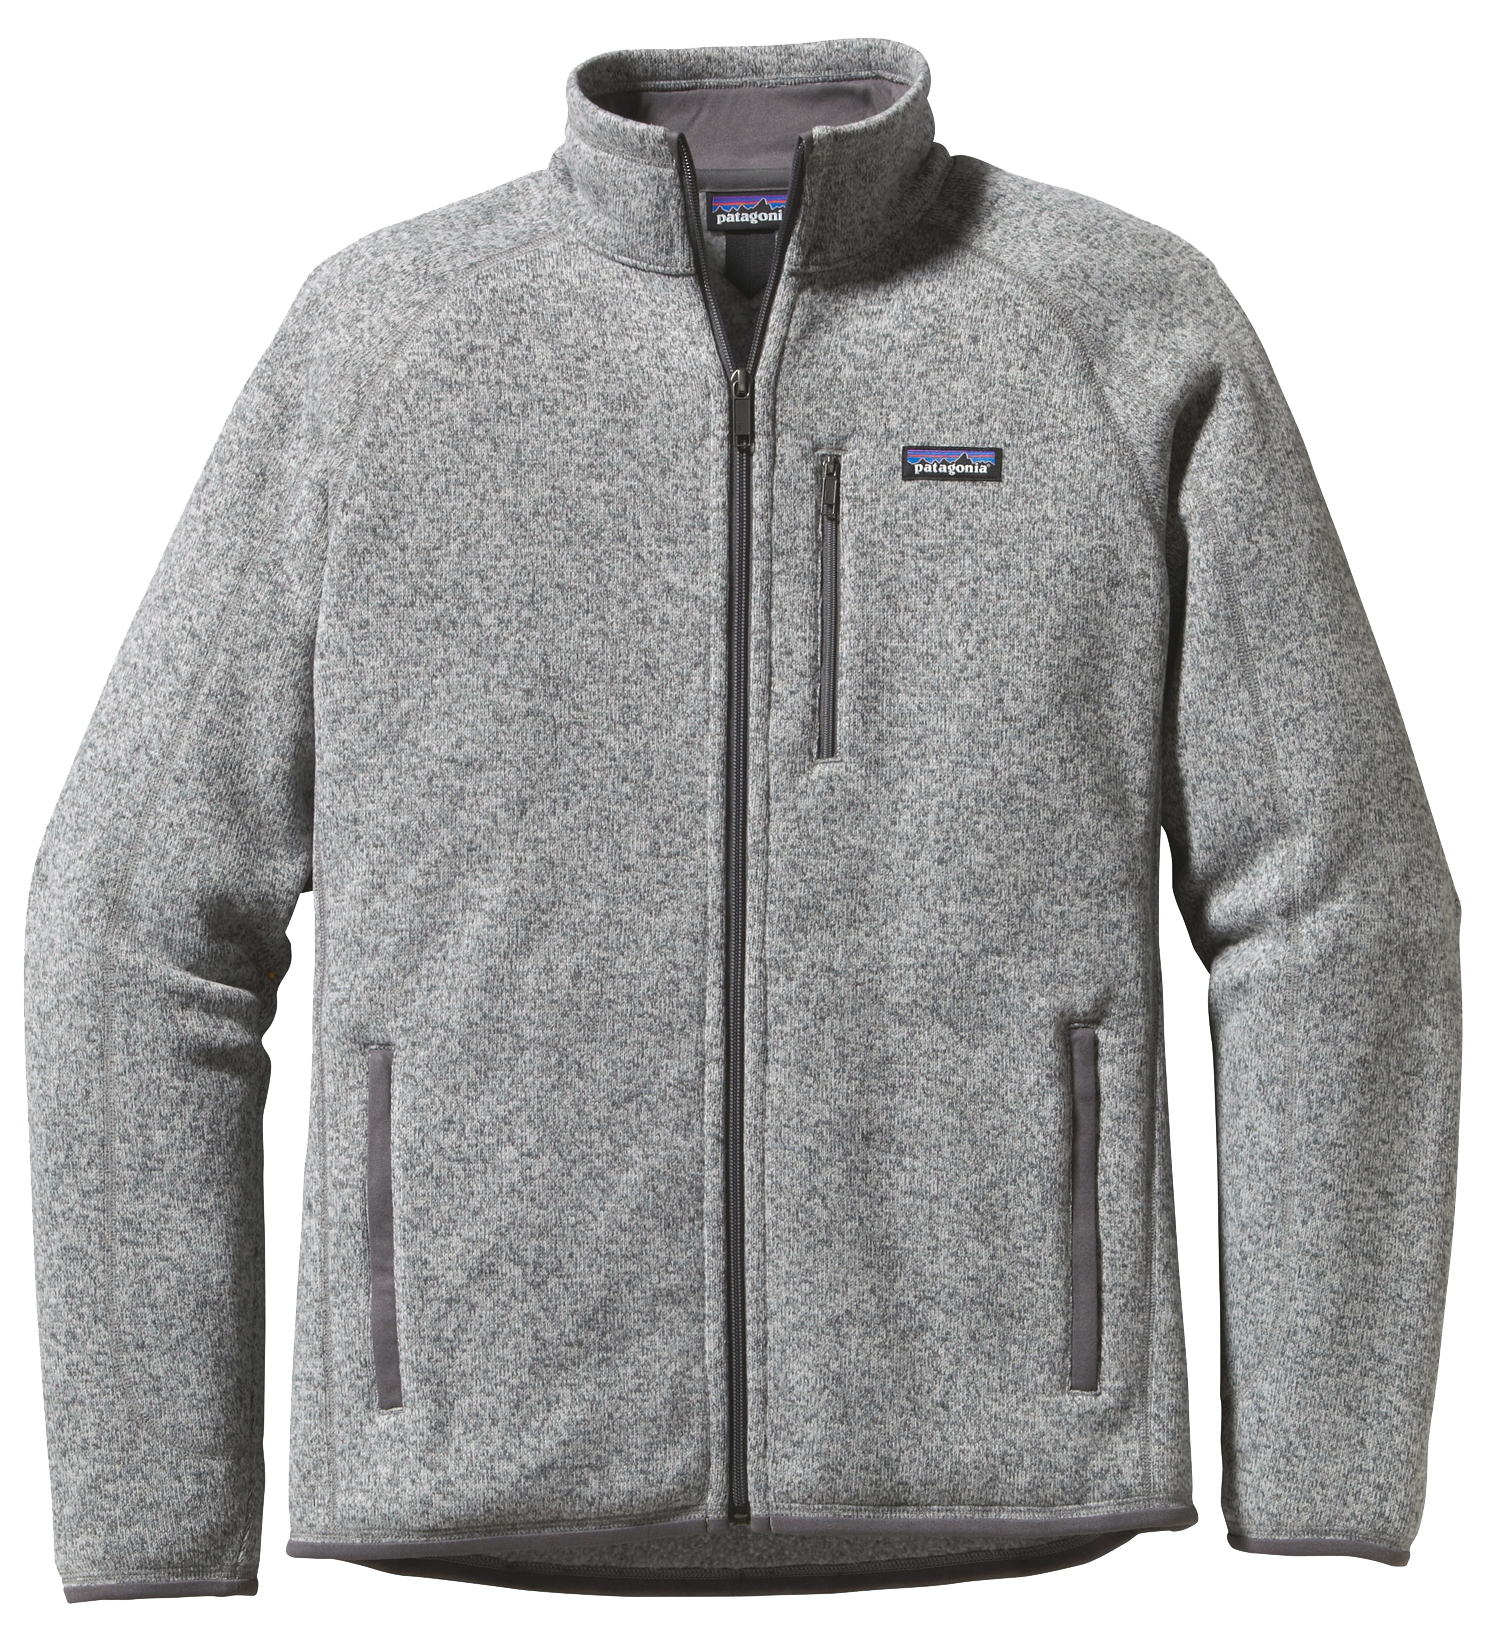 cbacdbf23 Patagonia Better Sweater Jacket - Men's | MEC